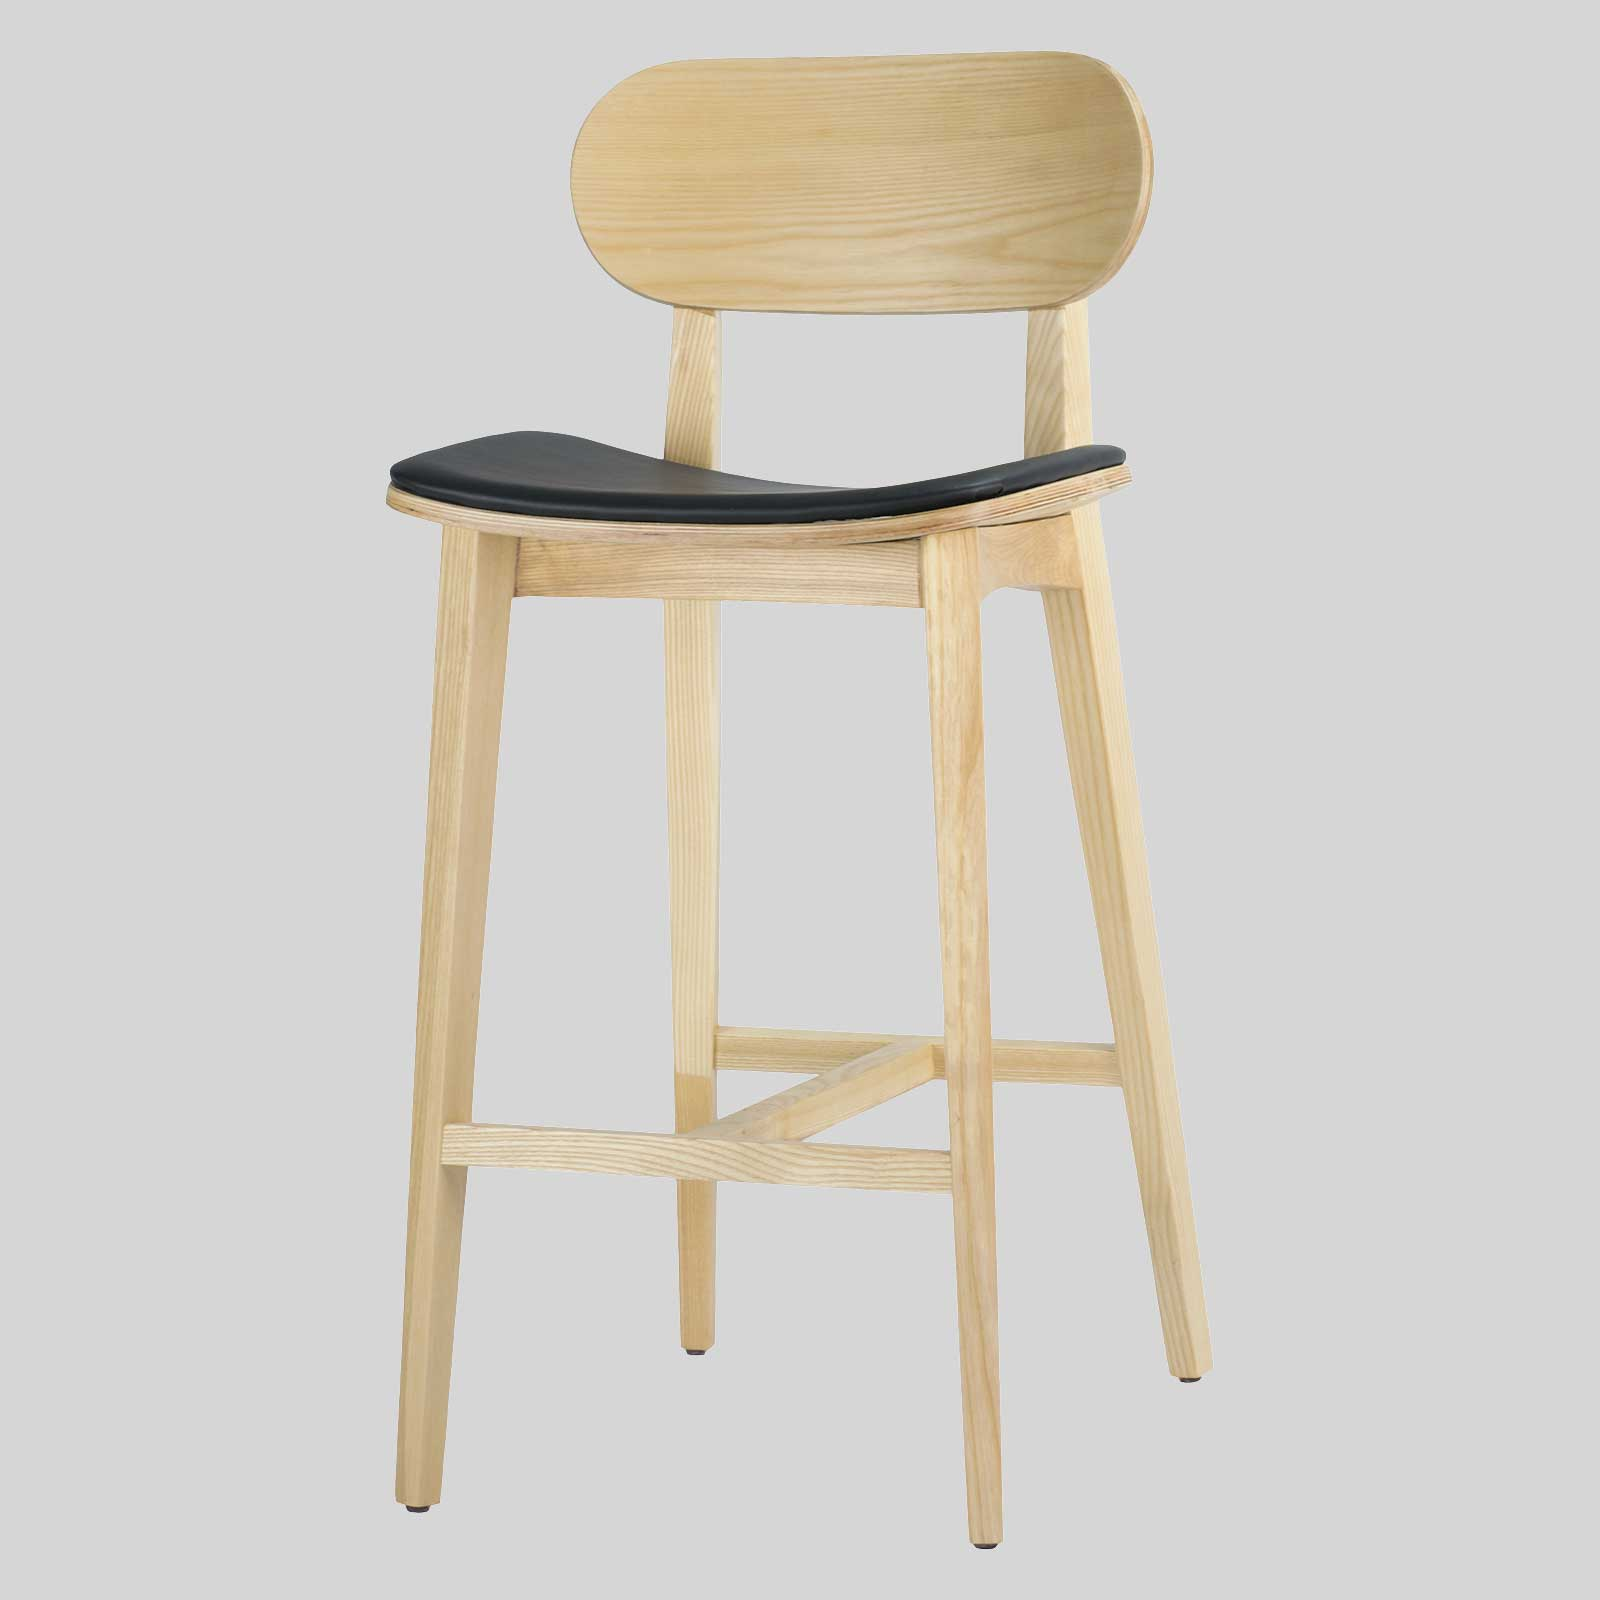 Asahi Bar Chairs - Natural